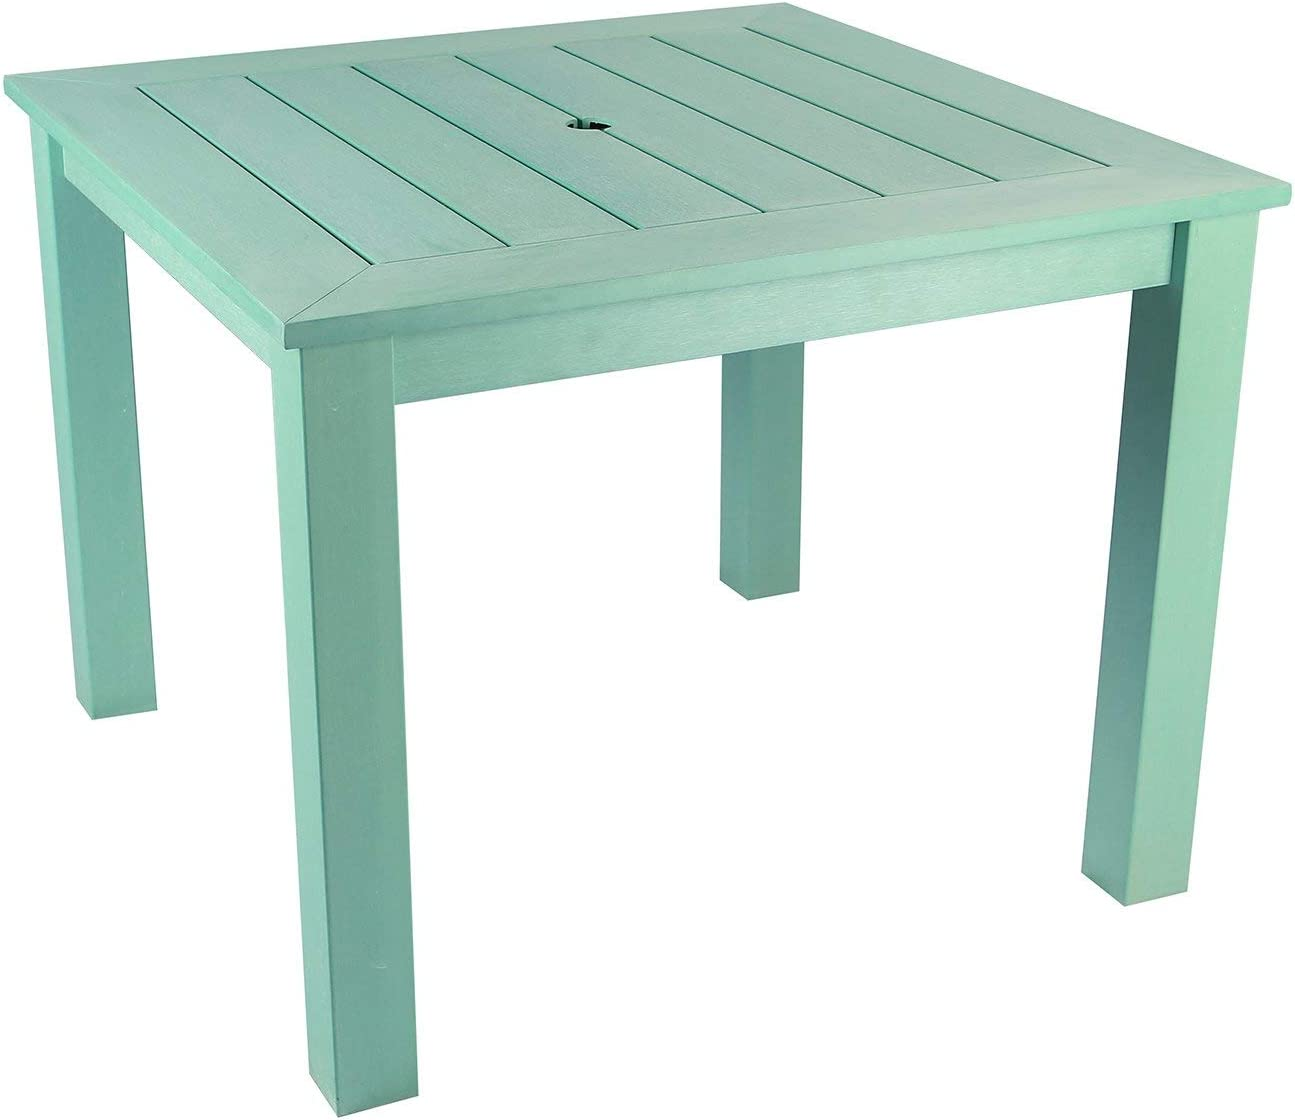 DUCK EGG WINAWOOD SQUARE DINING TABLE 98x98cm